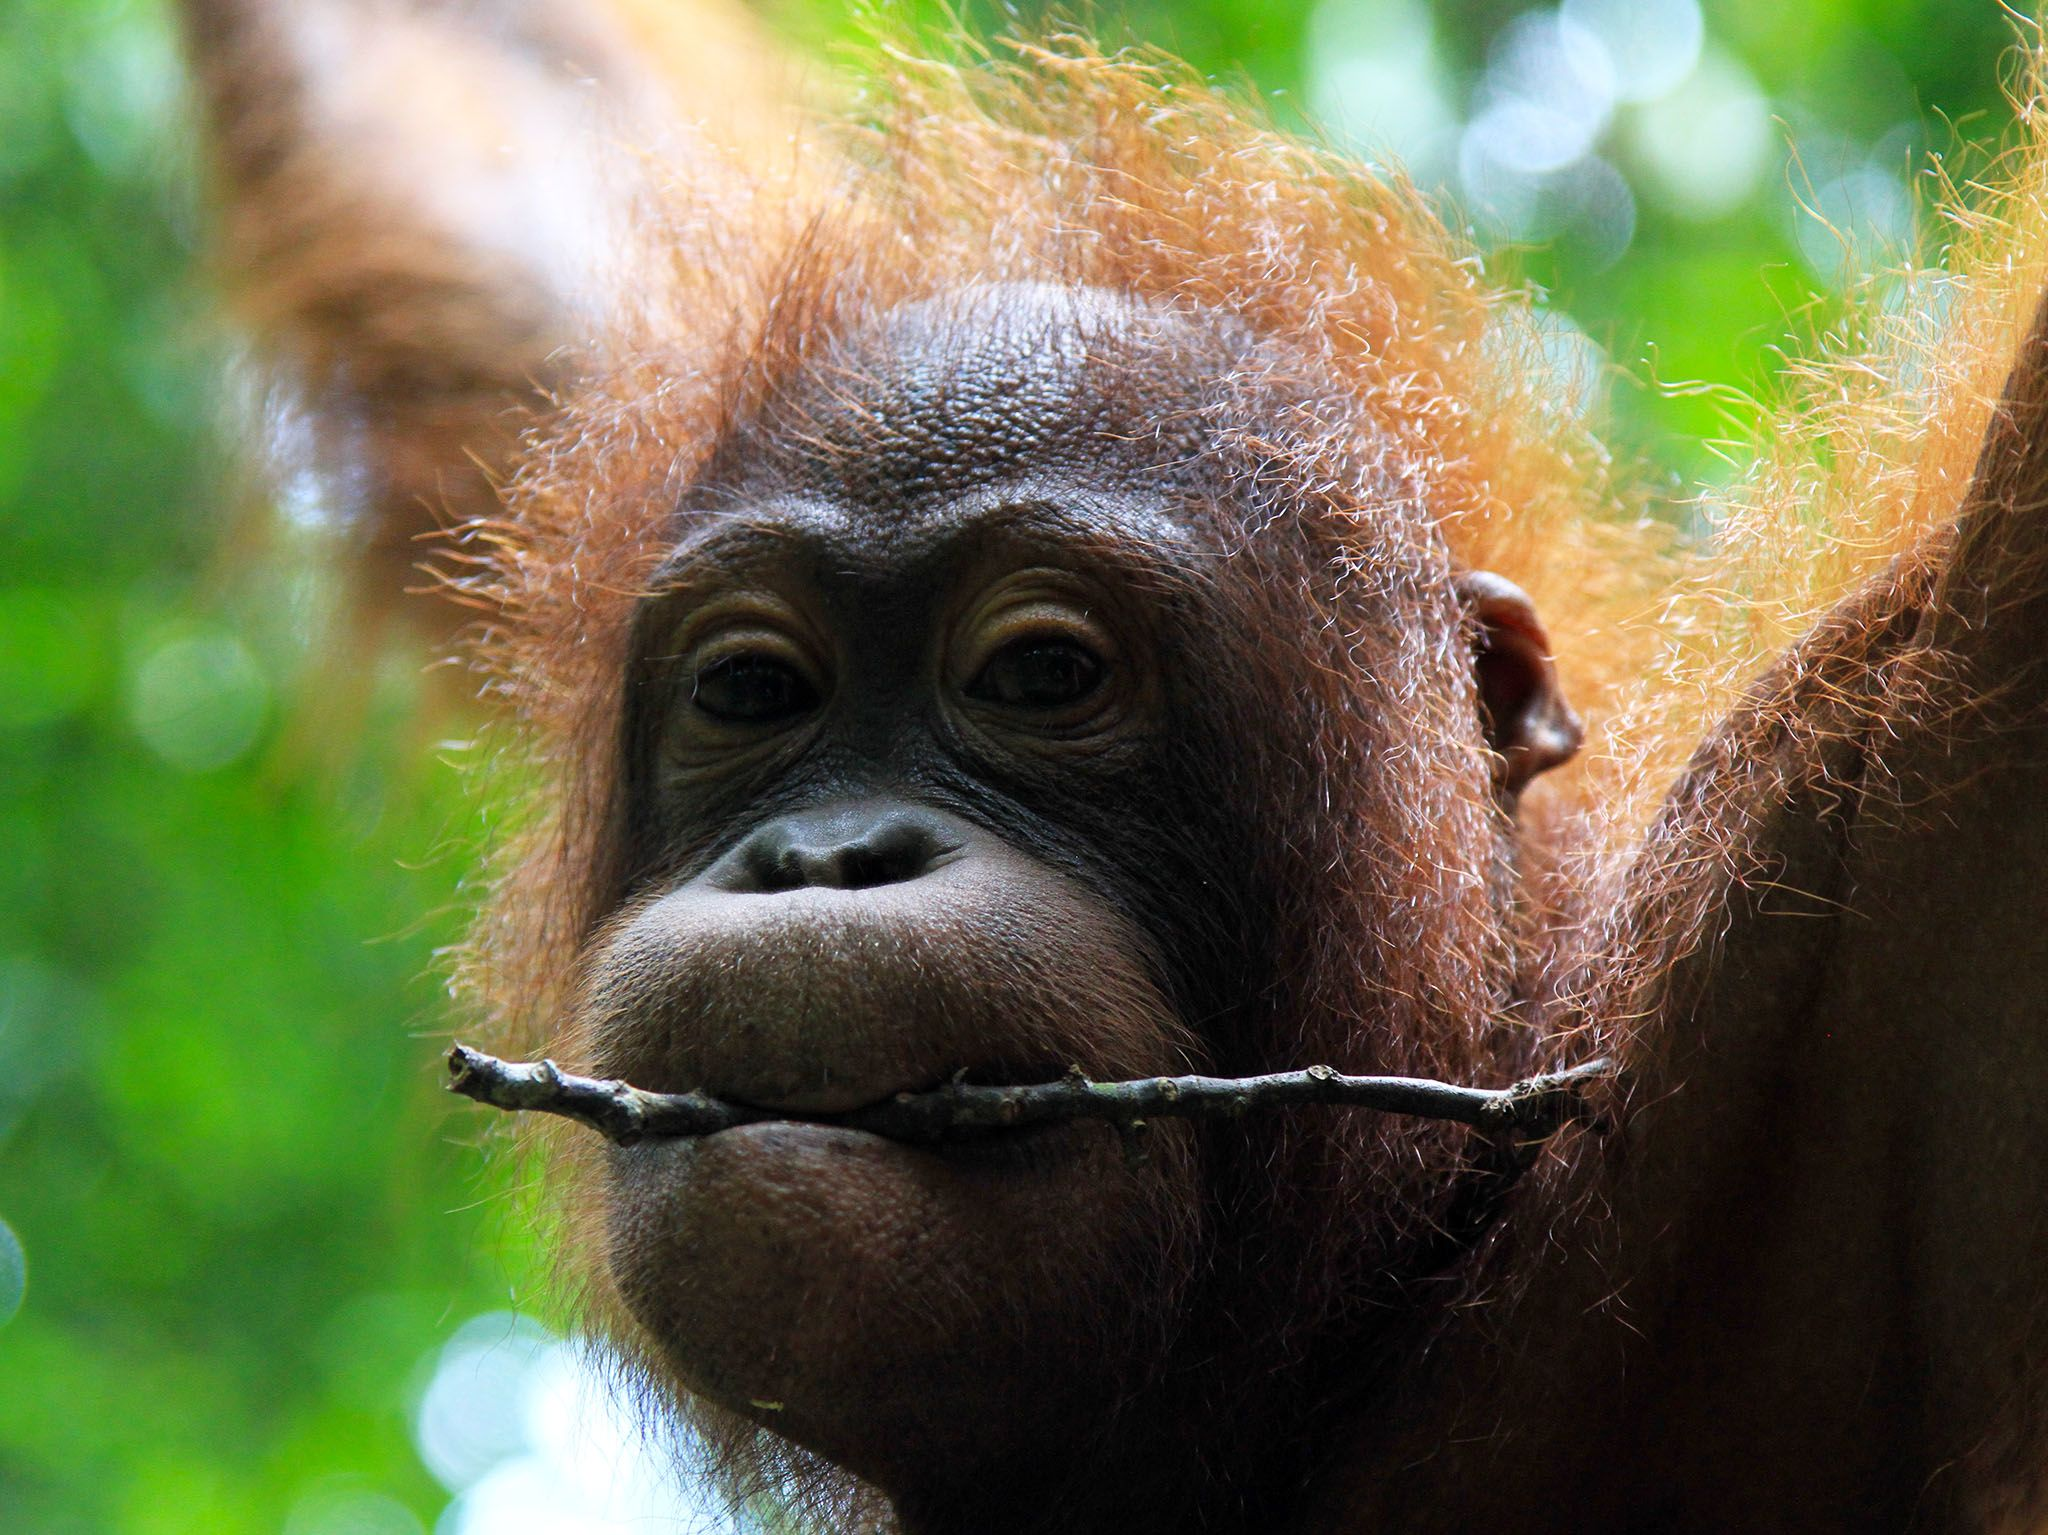 Malaysia: Baby orangutan holding stick in mouth. This image is from Borneo's Secret Kingdom. [Photo of the day - ژانویه 2017]